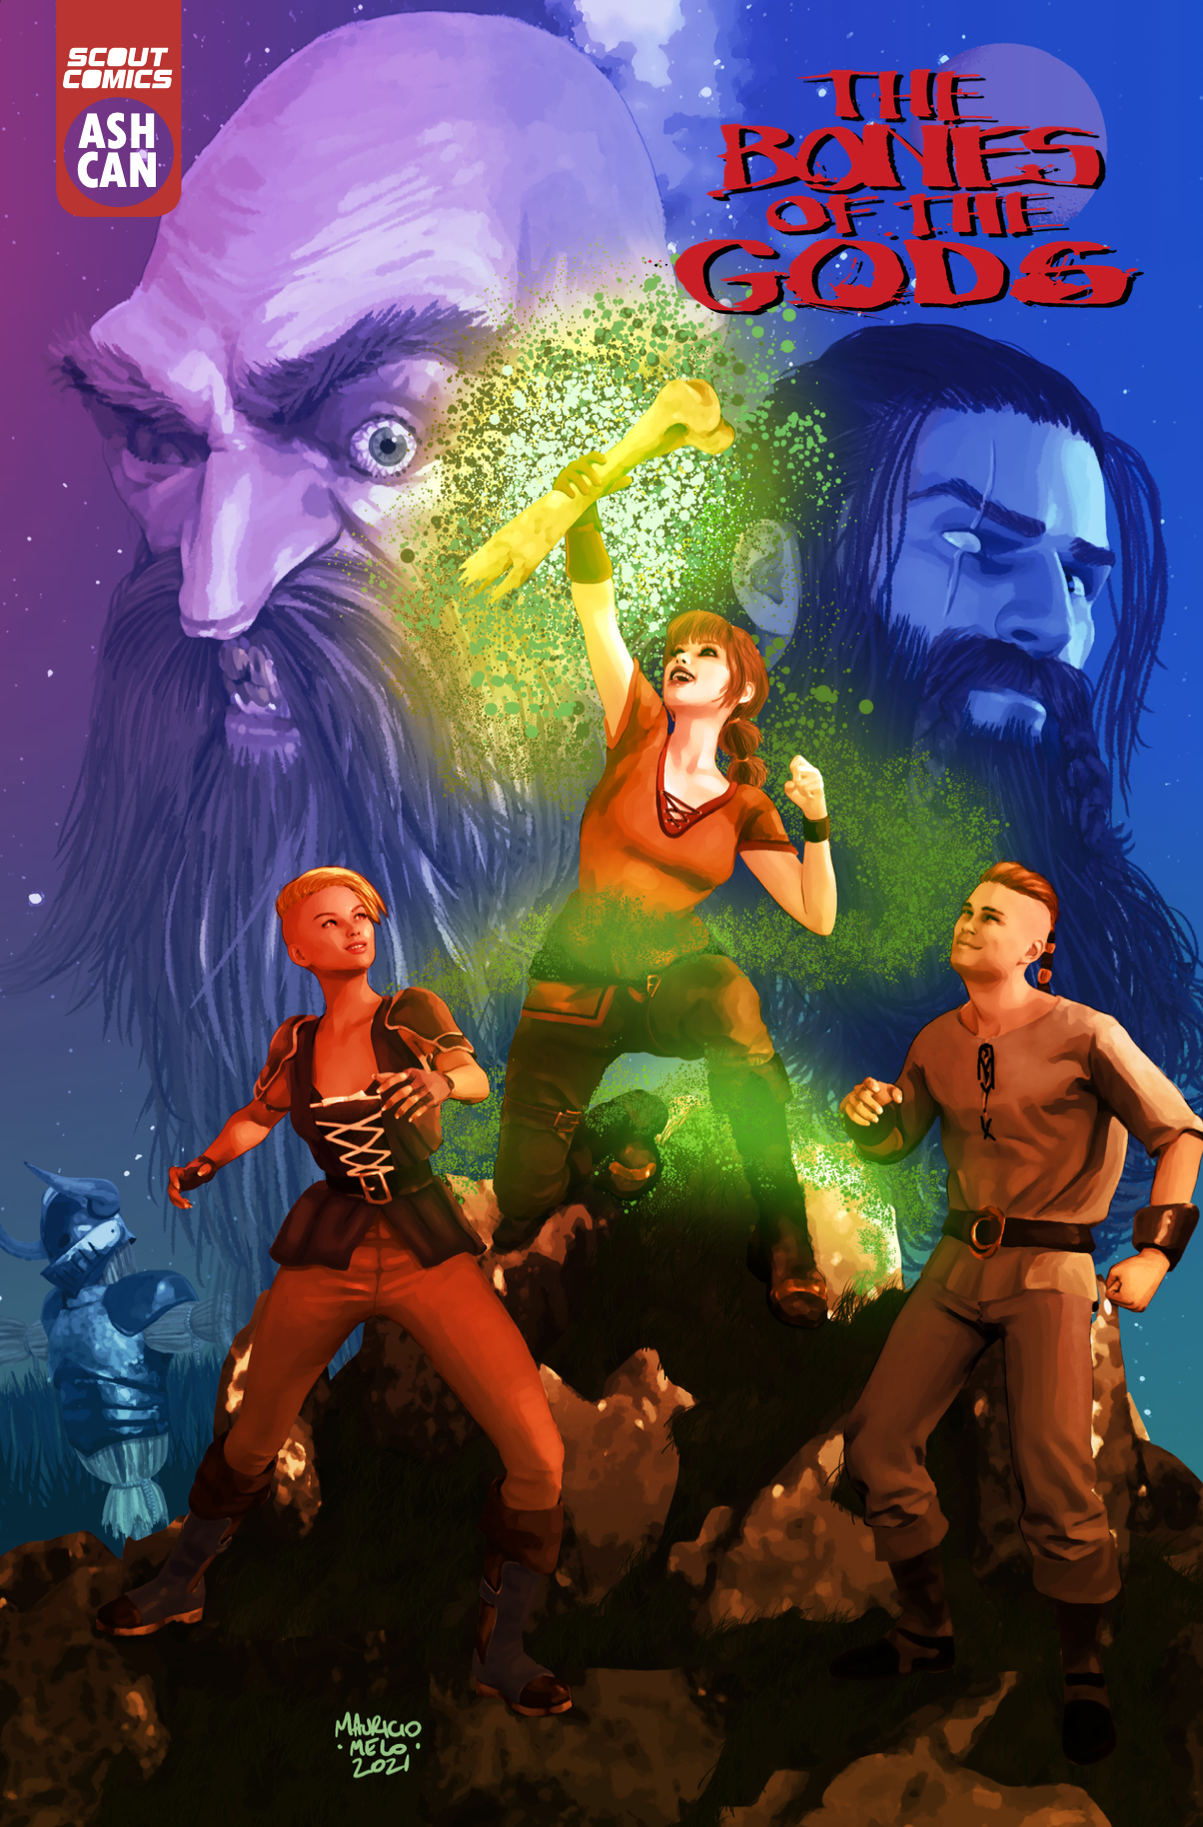 bones-of-the-gods-nycc-cover.png